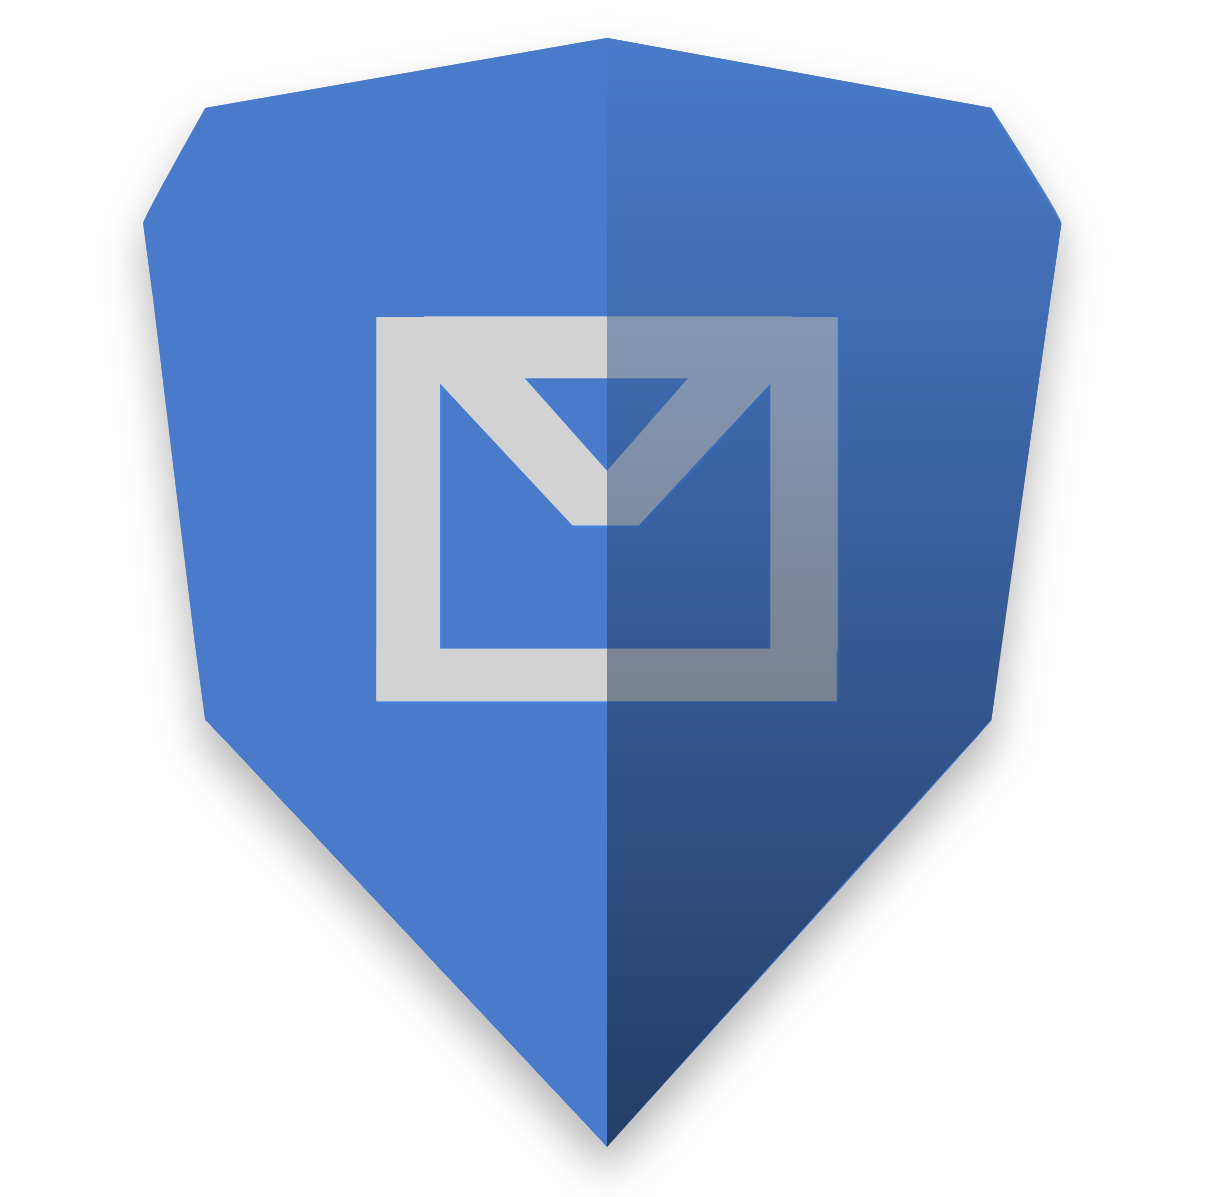 Mail Shield